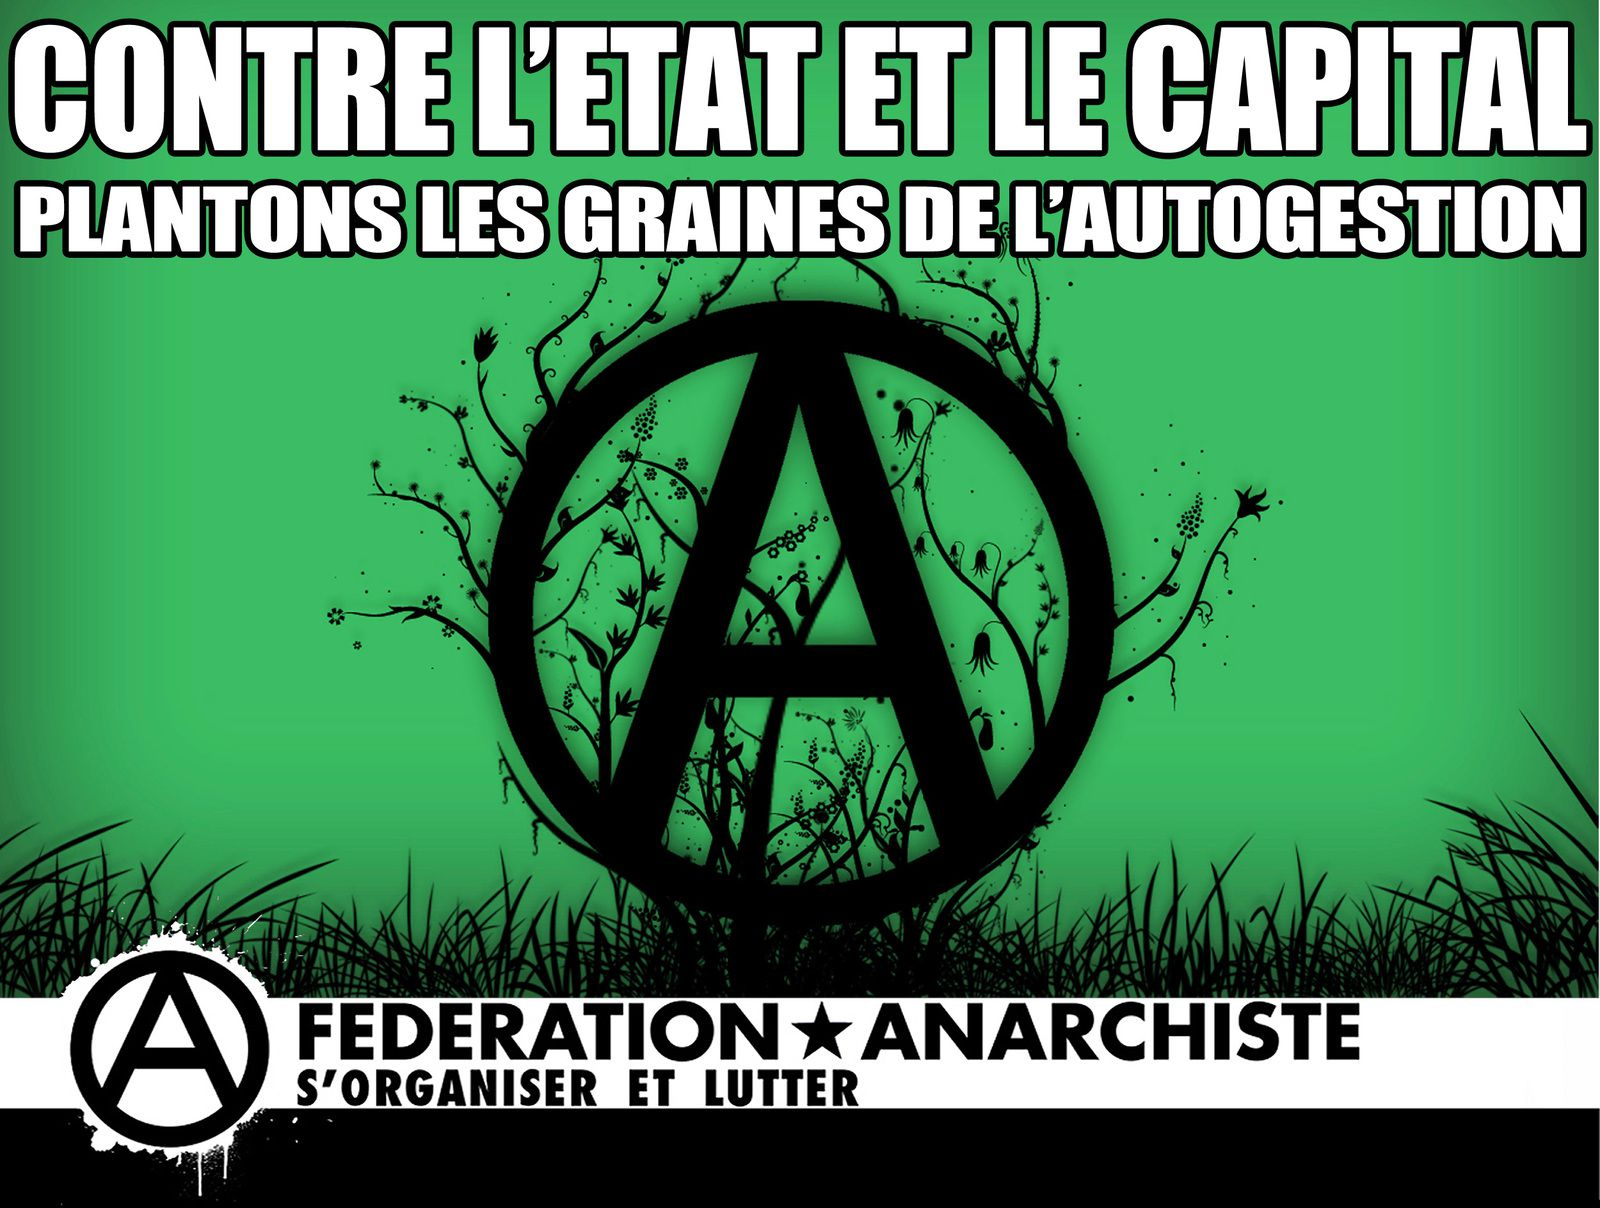 capitalisme Etat salariat Anarchisme Autogestion syndicats